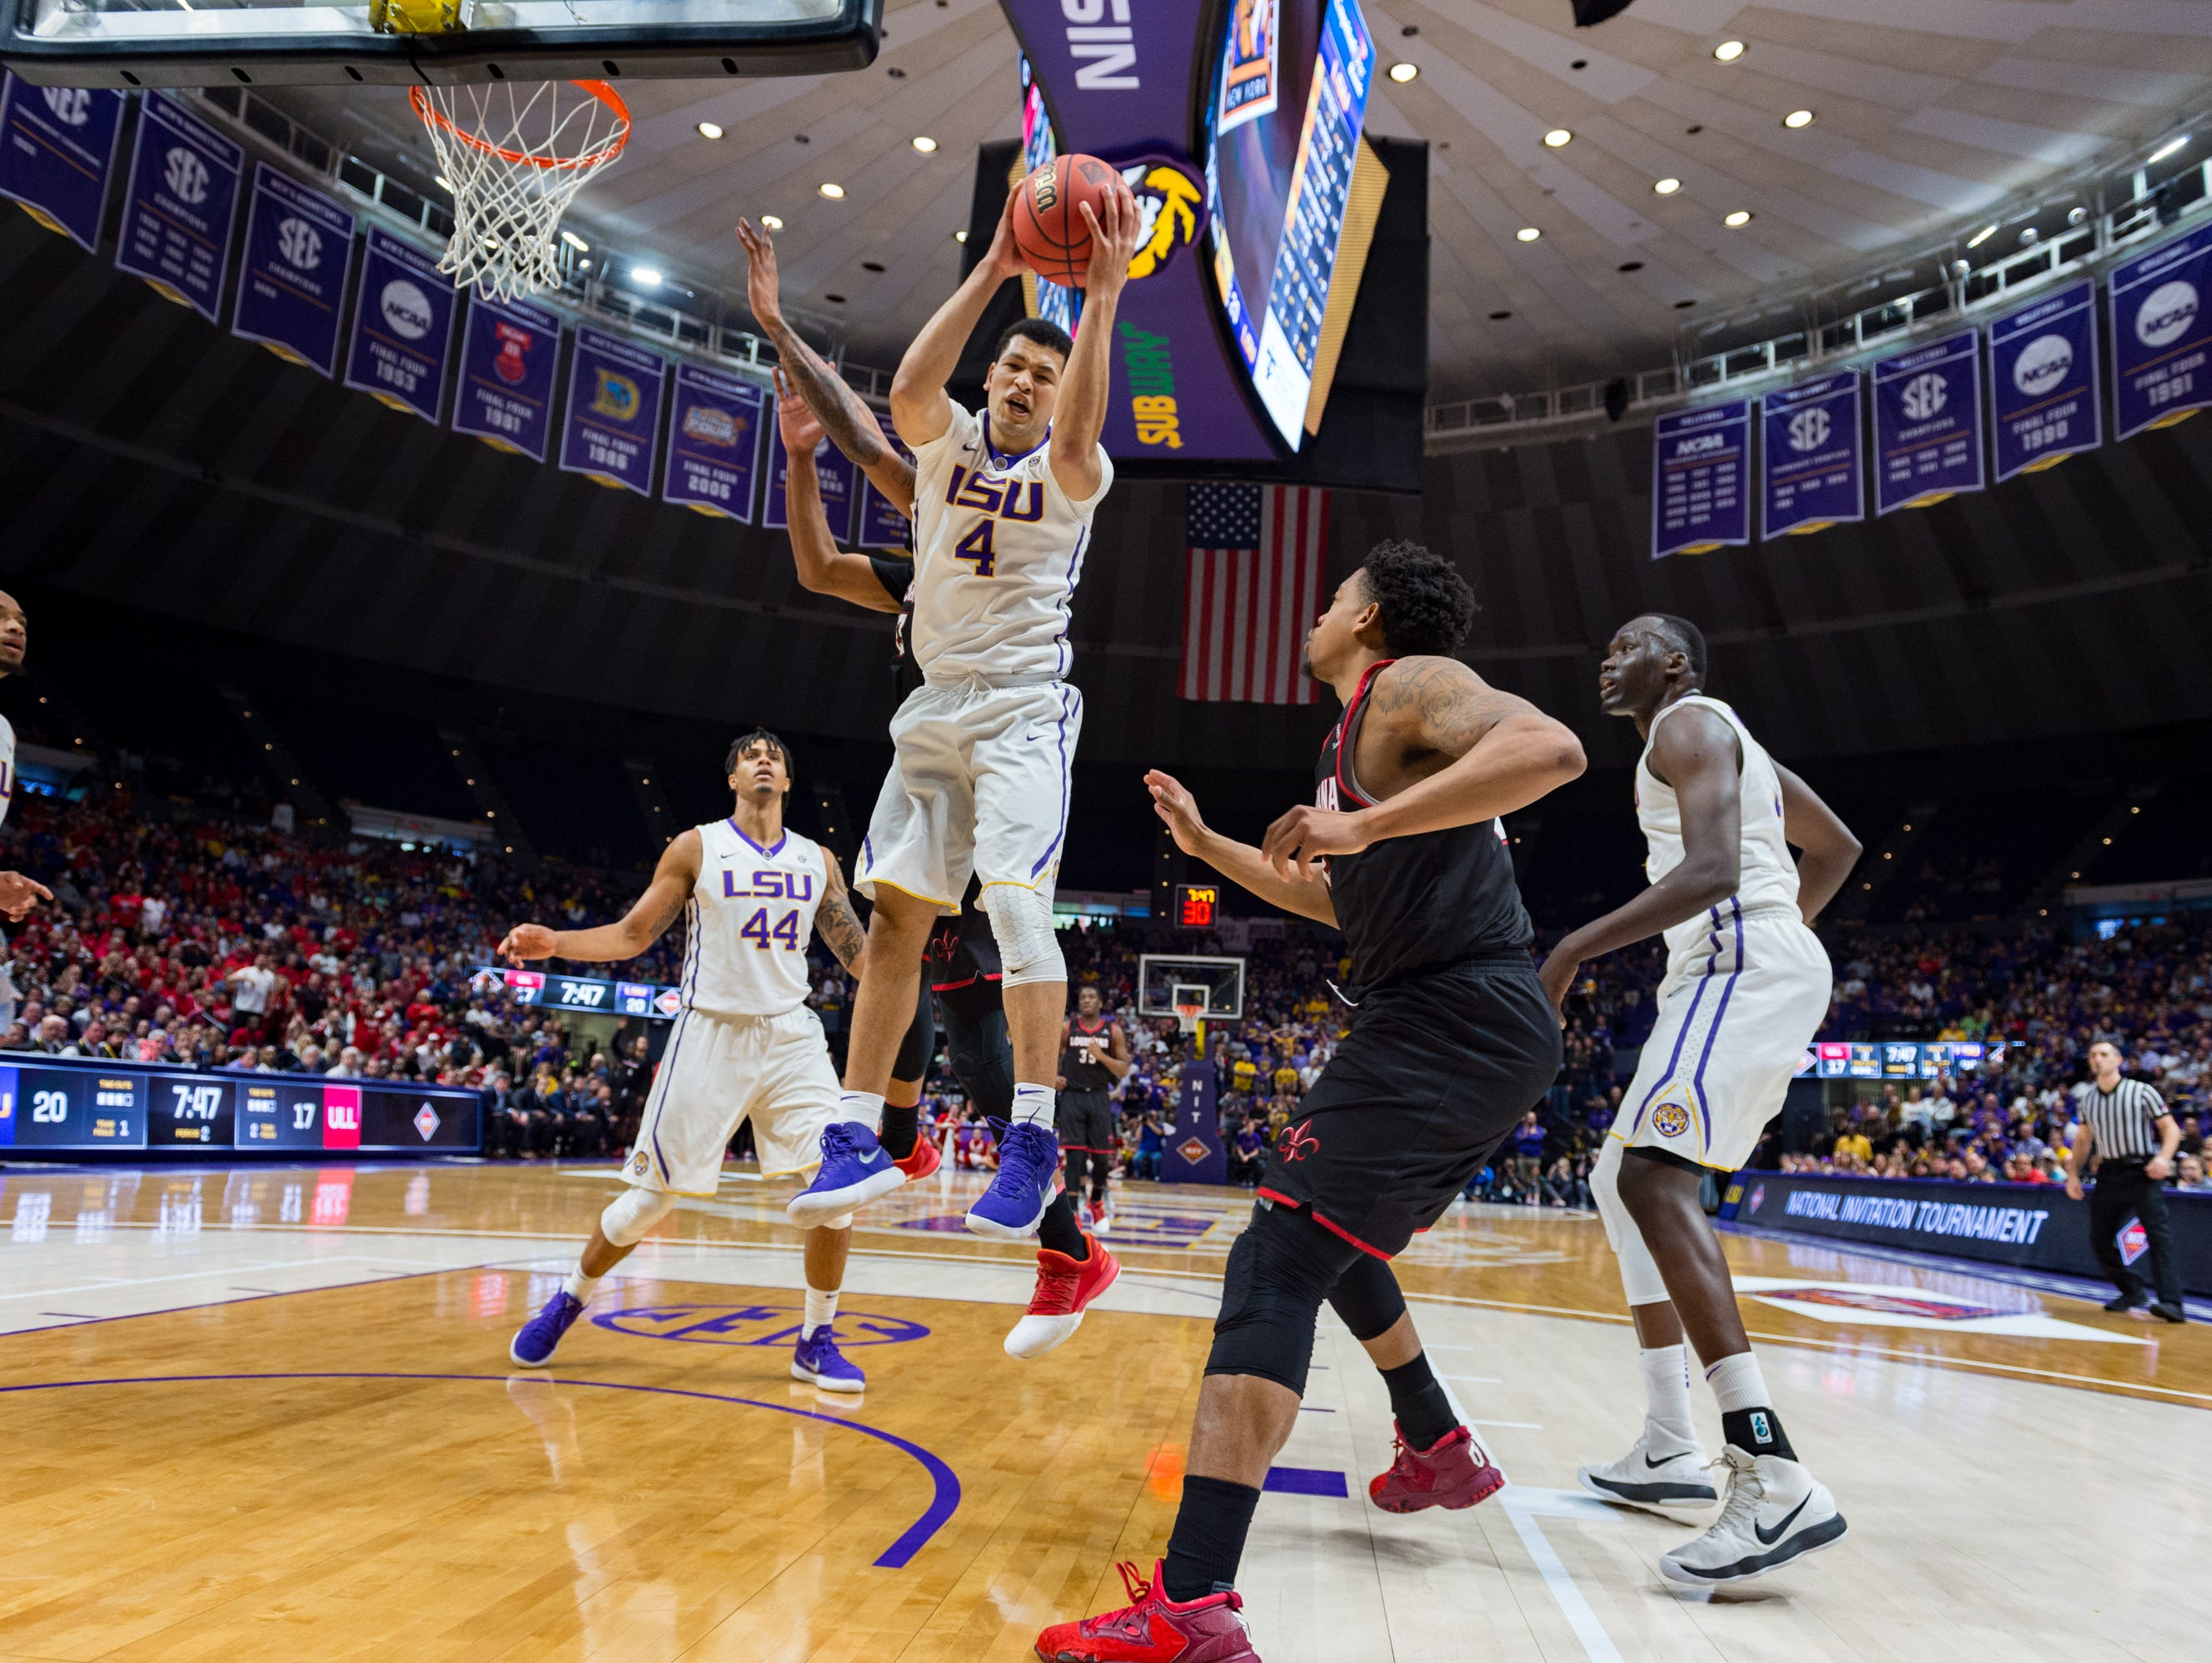 Tiger Skylar Mays pulls in the rebound as the Louisiana Ragin' Cajuns take on the LSU Tigers in the Pete Maravich Assembly Center. Baton Rouge, LA. Wednesday, March 14, 2018.